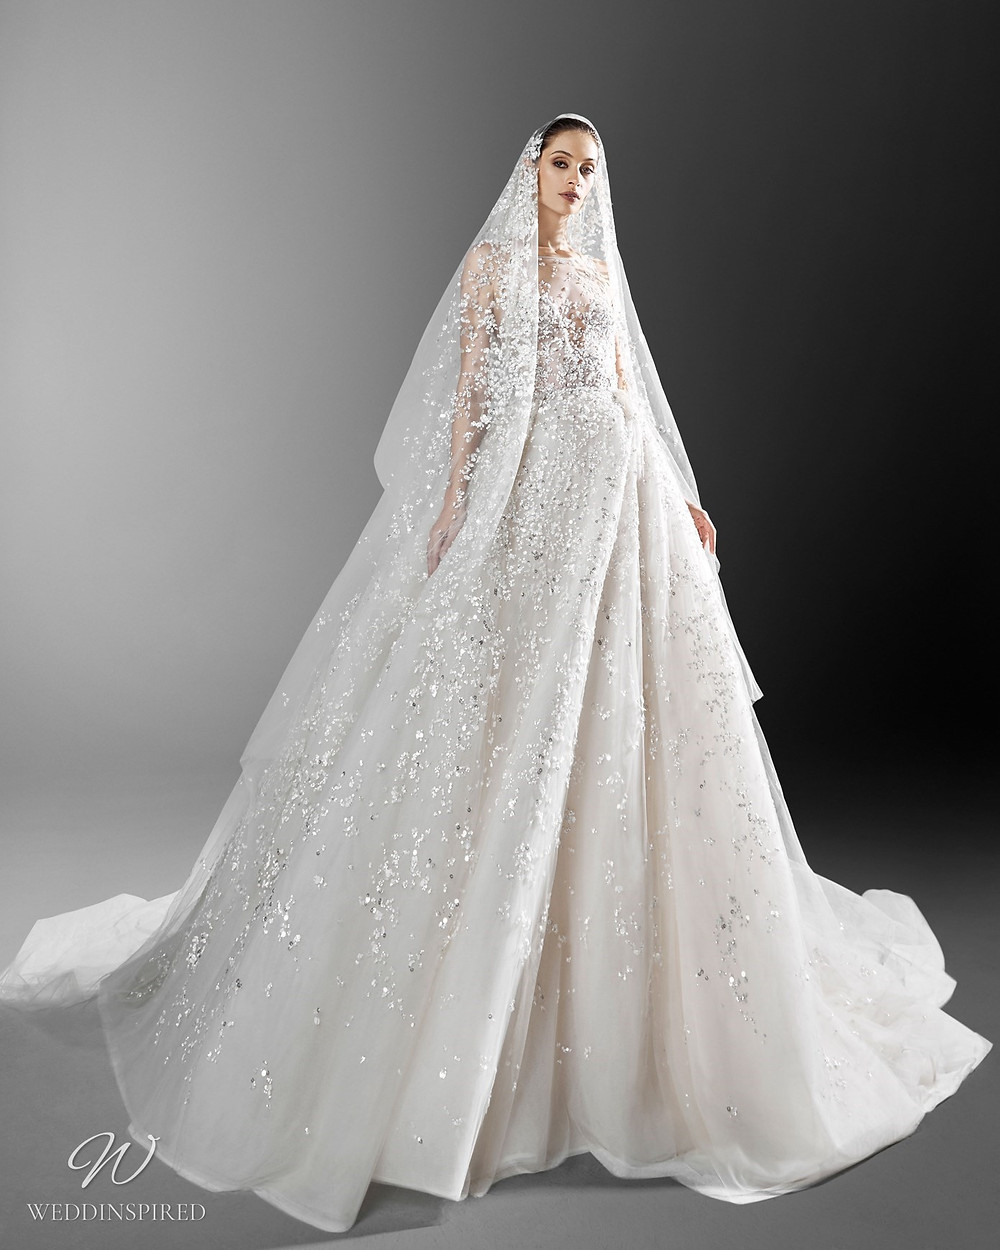 A Zuhair Murad sparkling crystal princess ball gown wedding dress with an illusion neckline and a veil